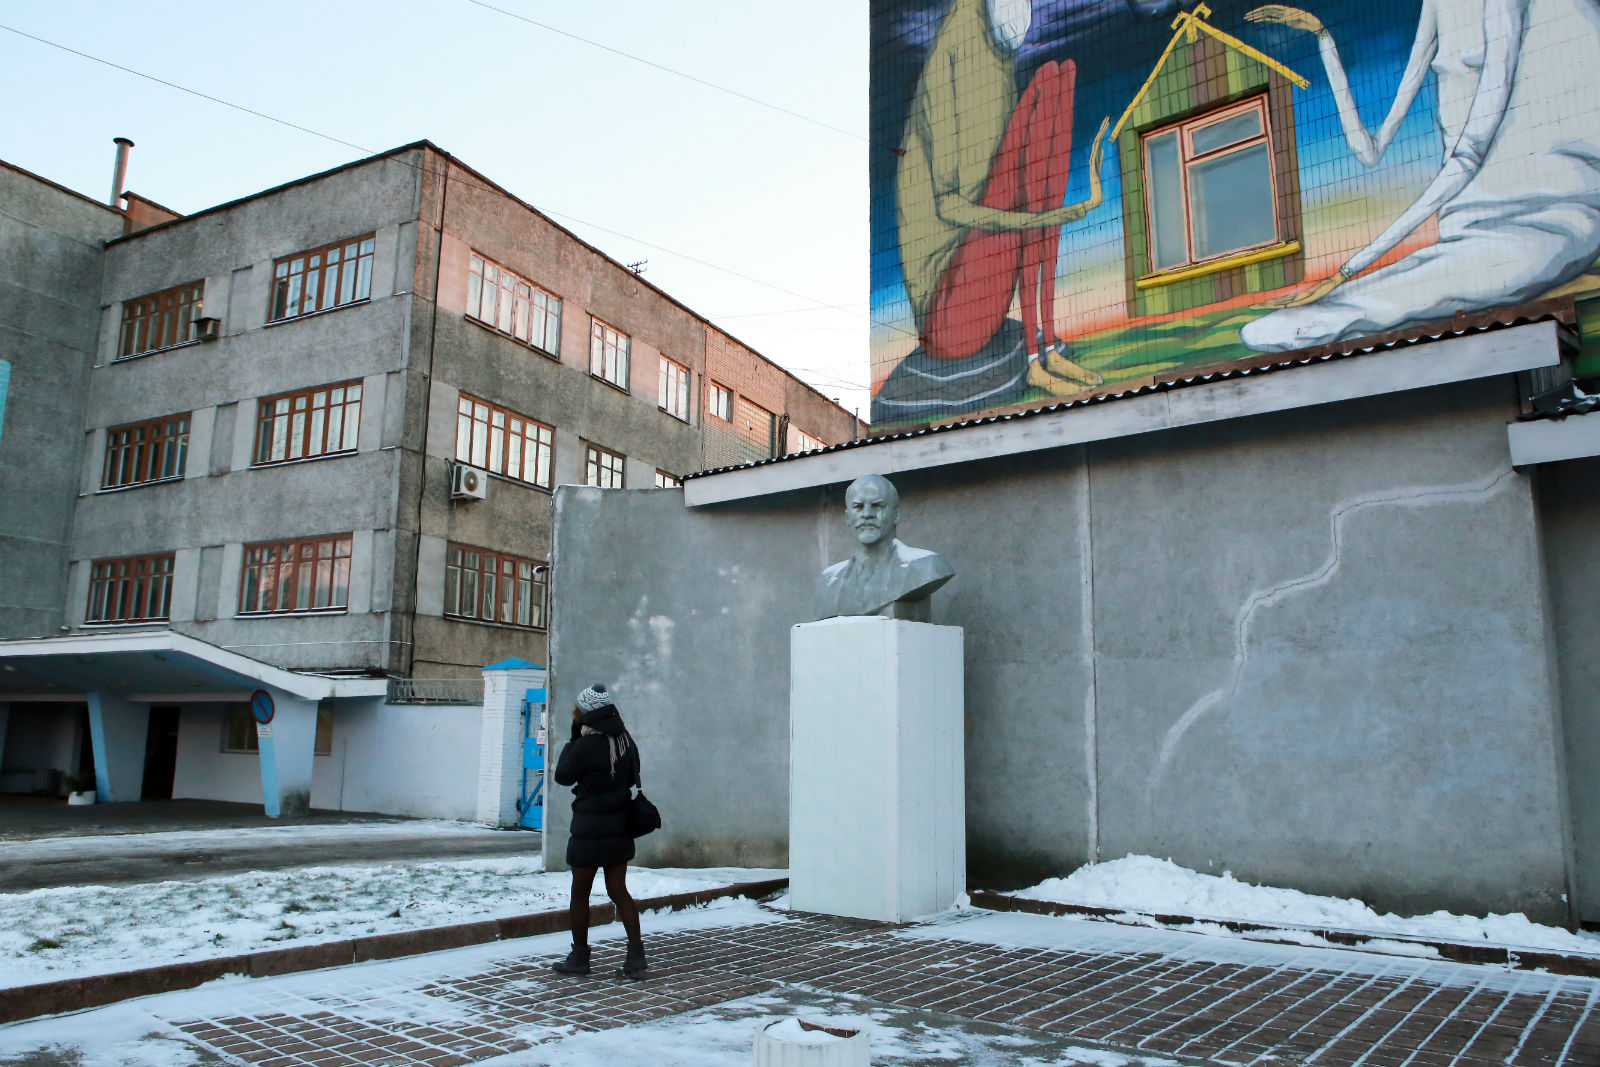 View on Kastrychnitskaya Street, in a 'relatively' liberal district of Minsk. You can still see a bust of Lenin, a symbol of Minsk's communist past.